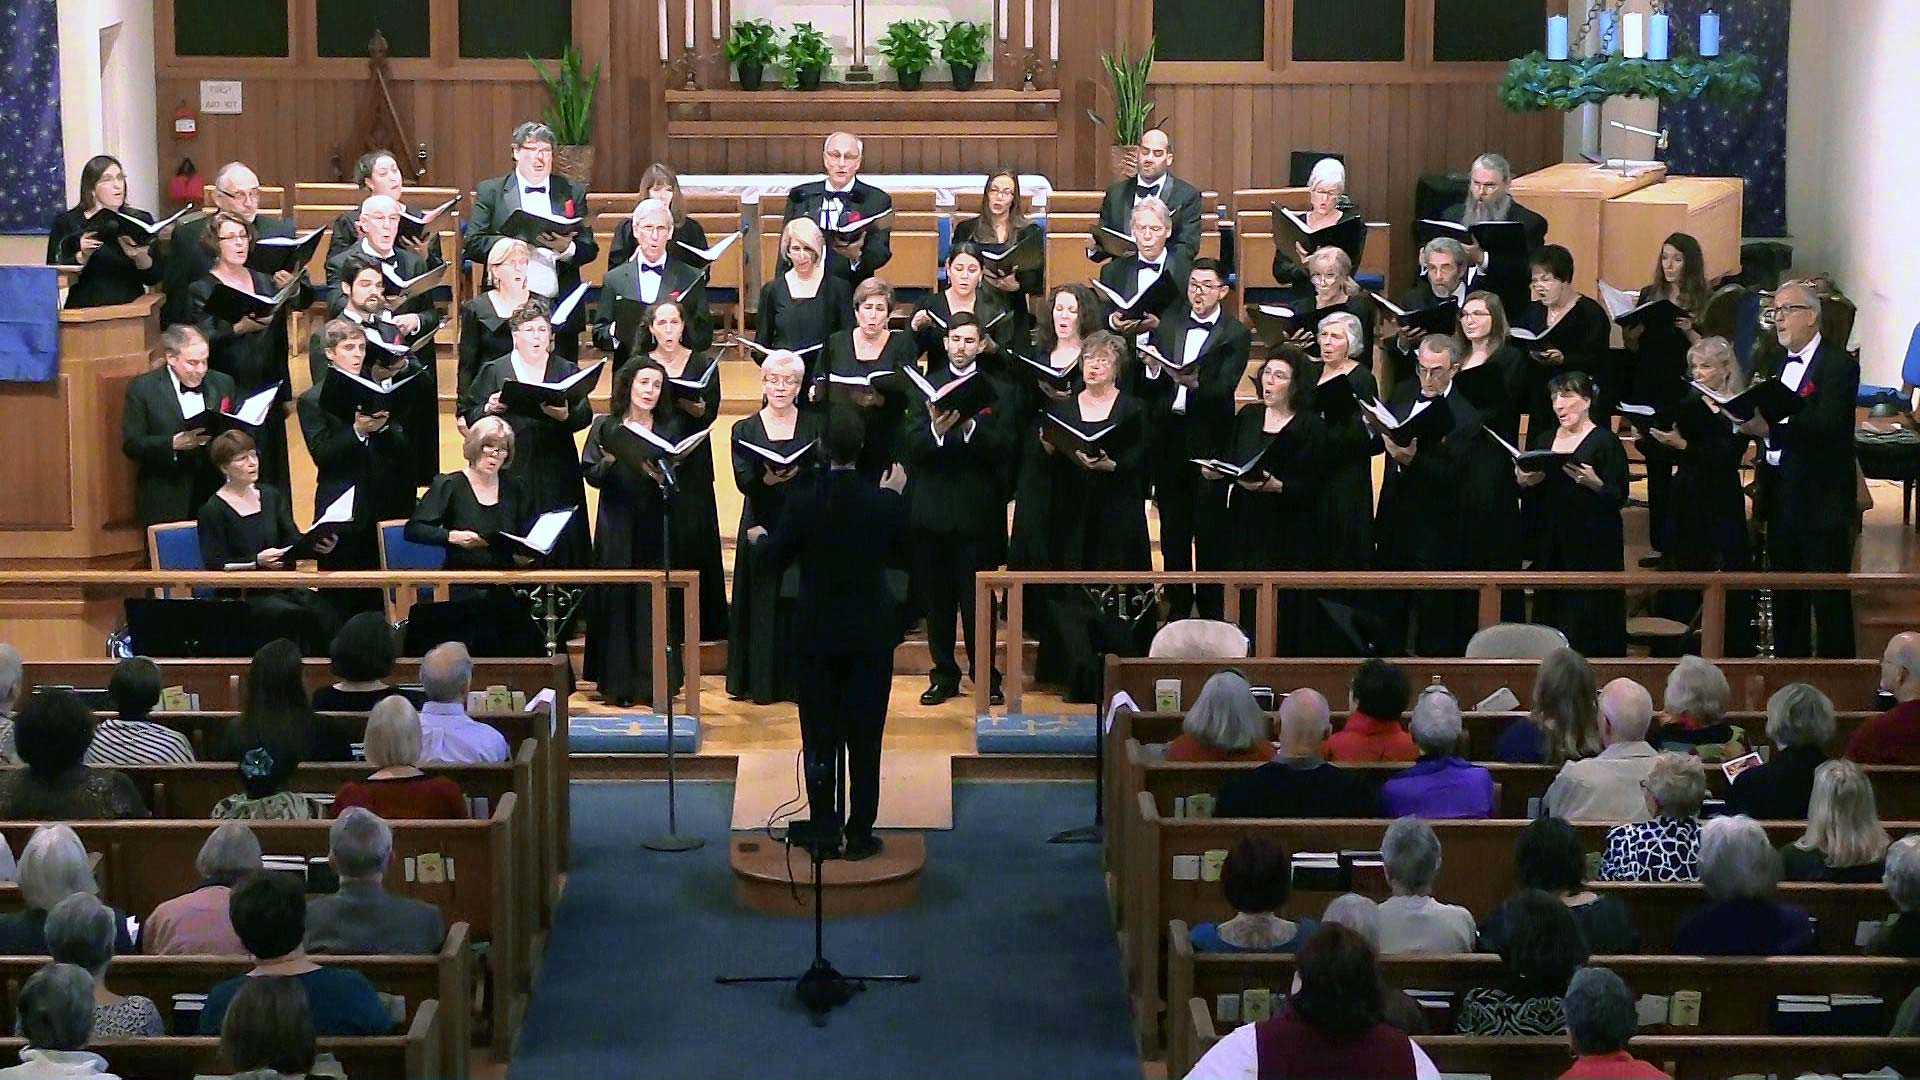 The Arizona Repertory Singers